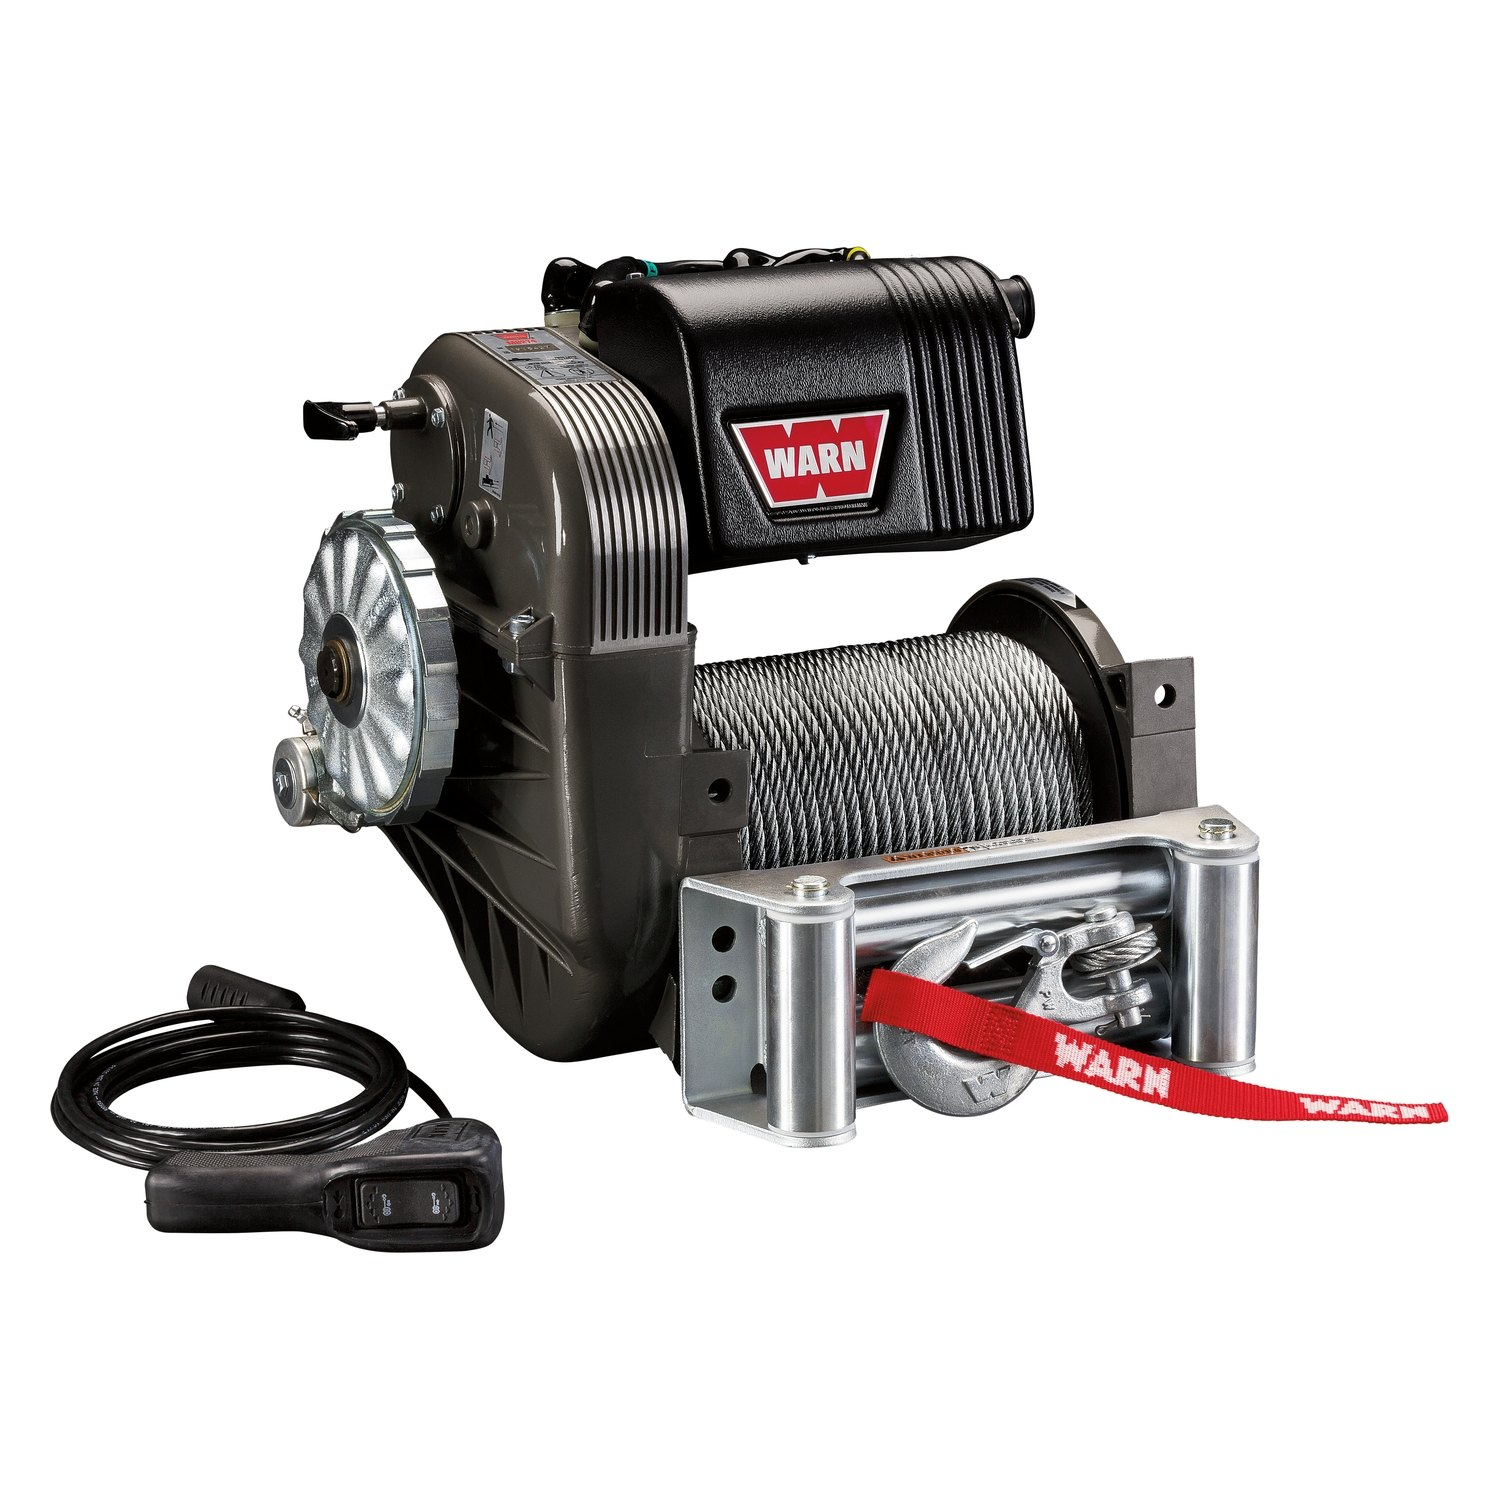 Warn 8000 Lbs M8274 50 Series Self Recovery Electric Winch With Wiring Diagram As Well Also Ropewarn Wire